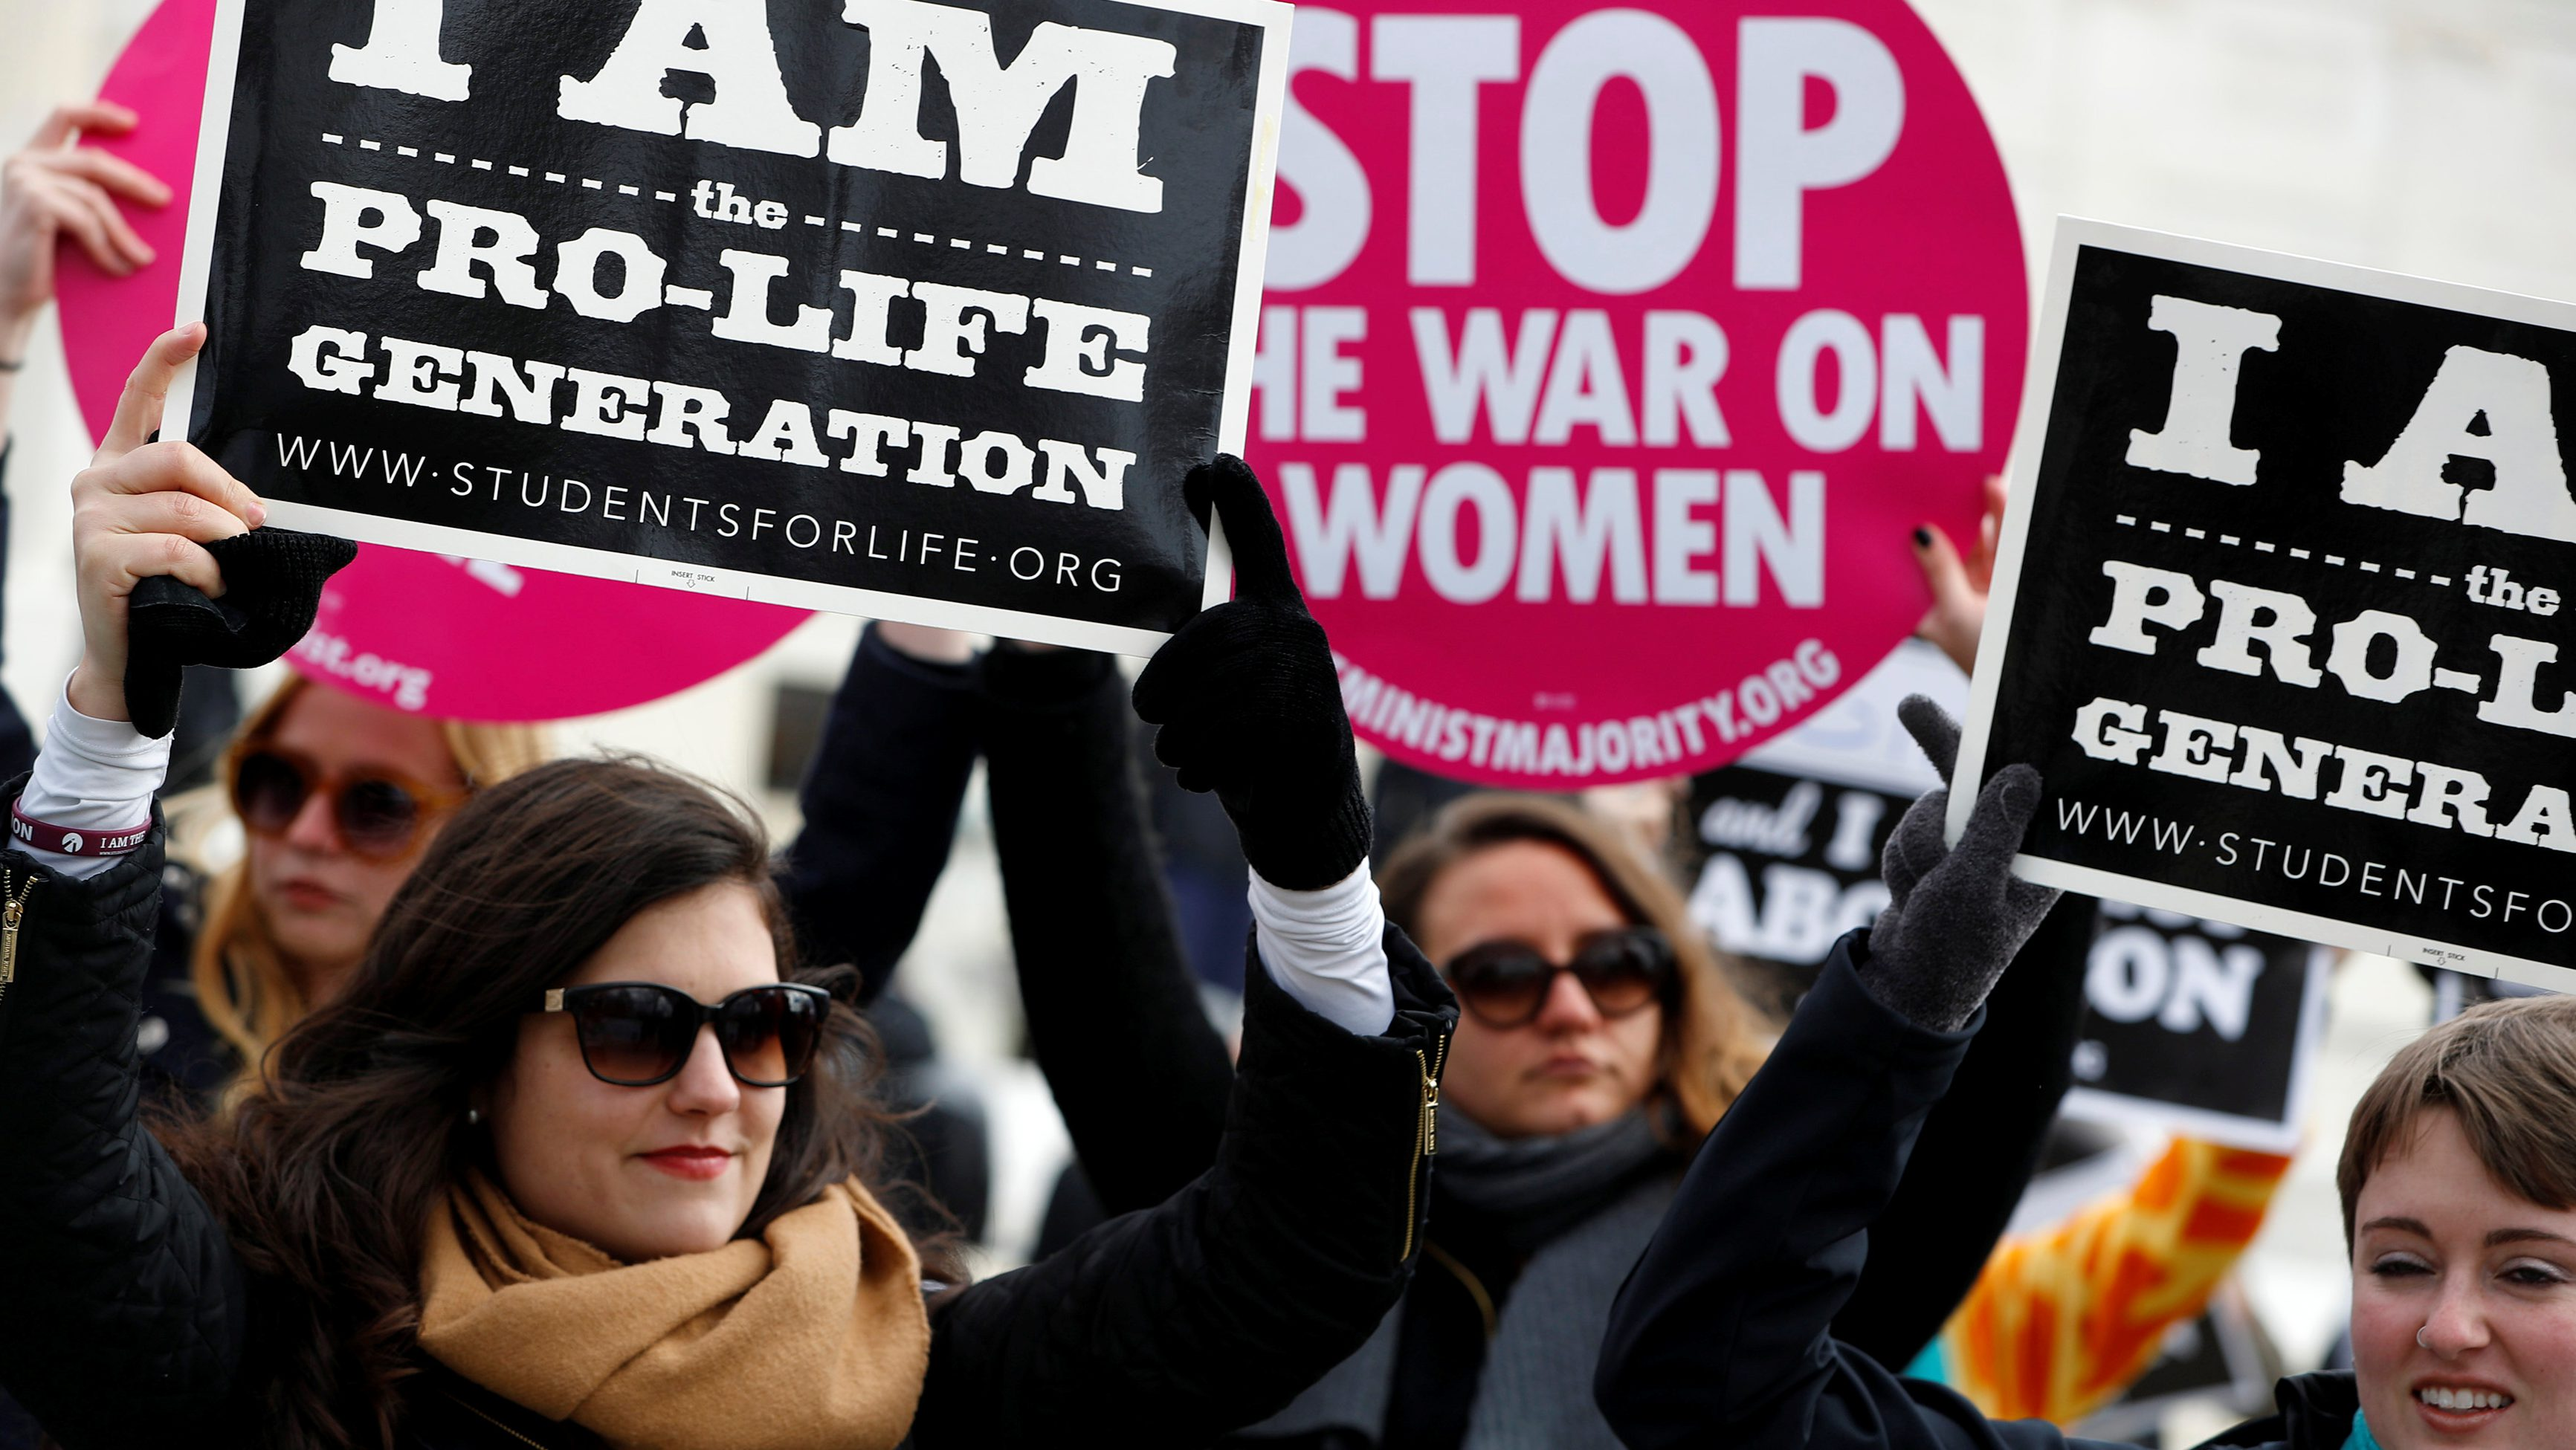 Pro-life activists gather for the National March for Life rally in Washington January 27, 2017.  REUTERS/Aaron P. Bernstein - RTSXP37